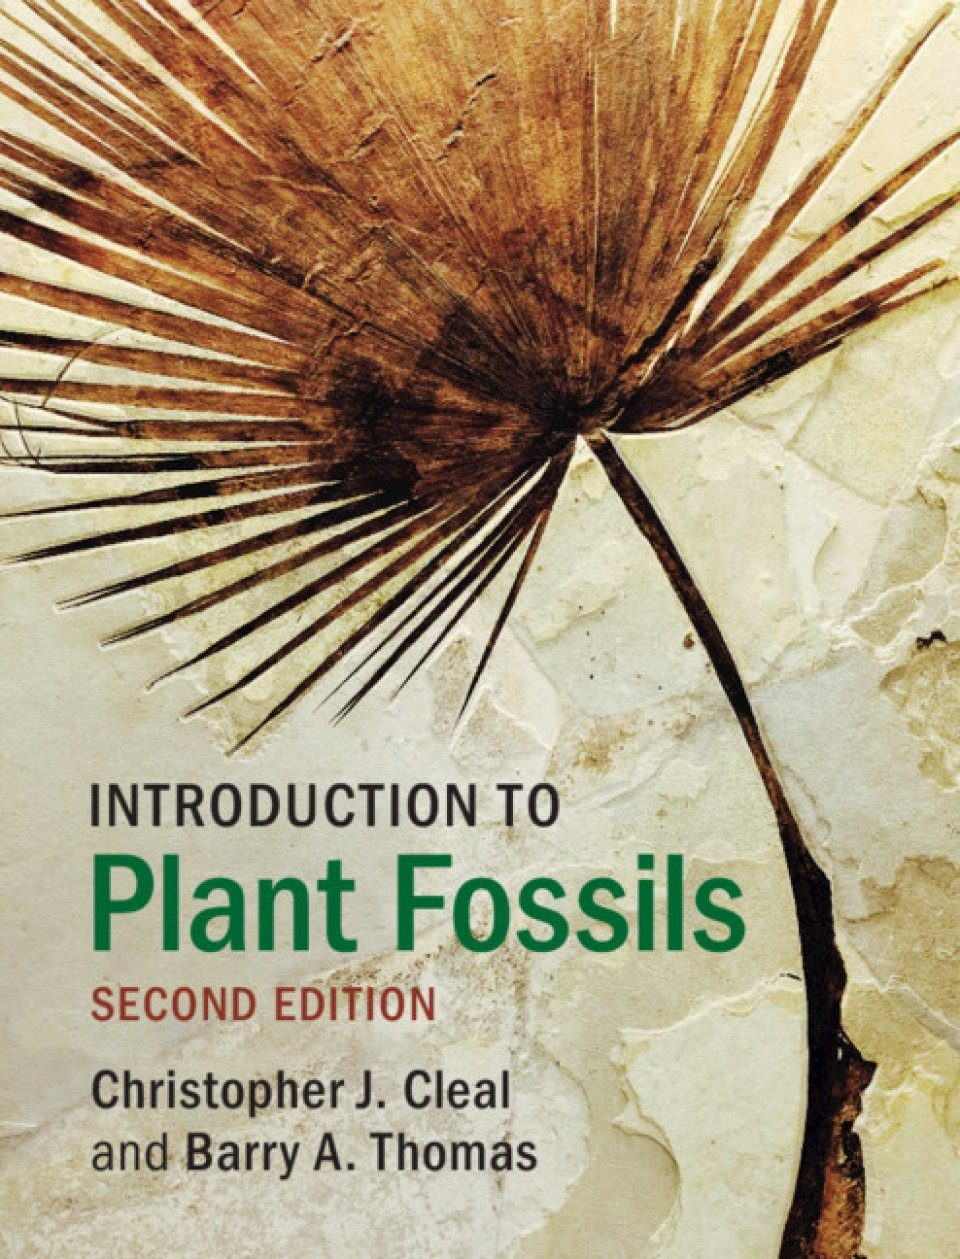 Introduction to Plant Fossils